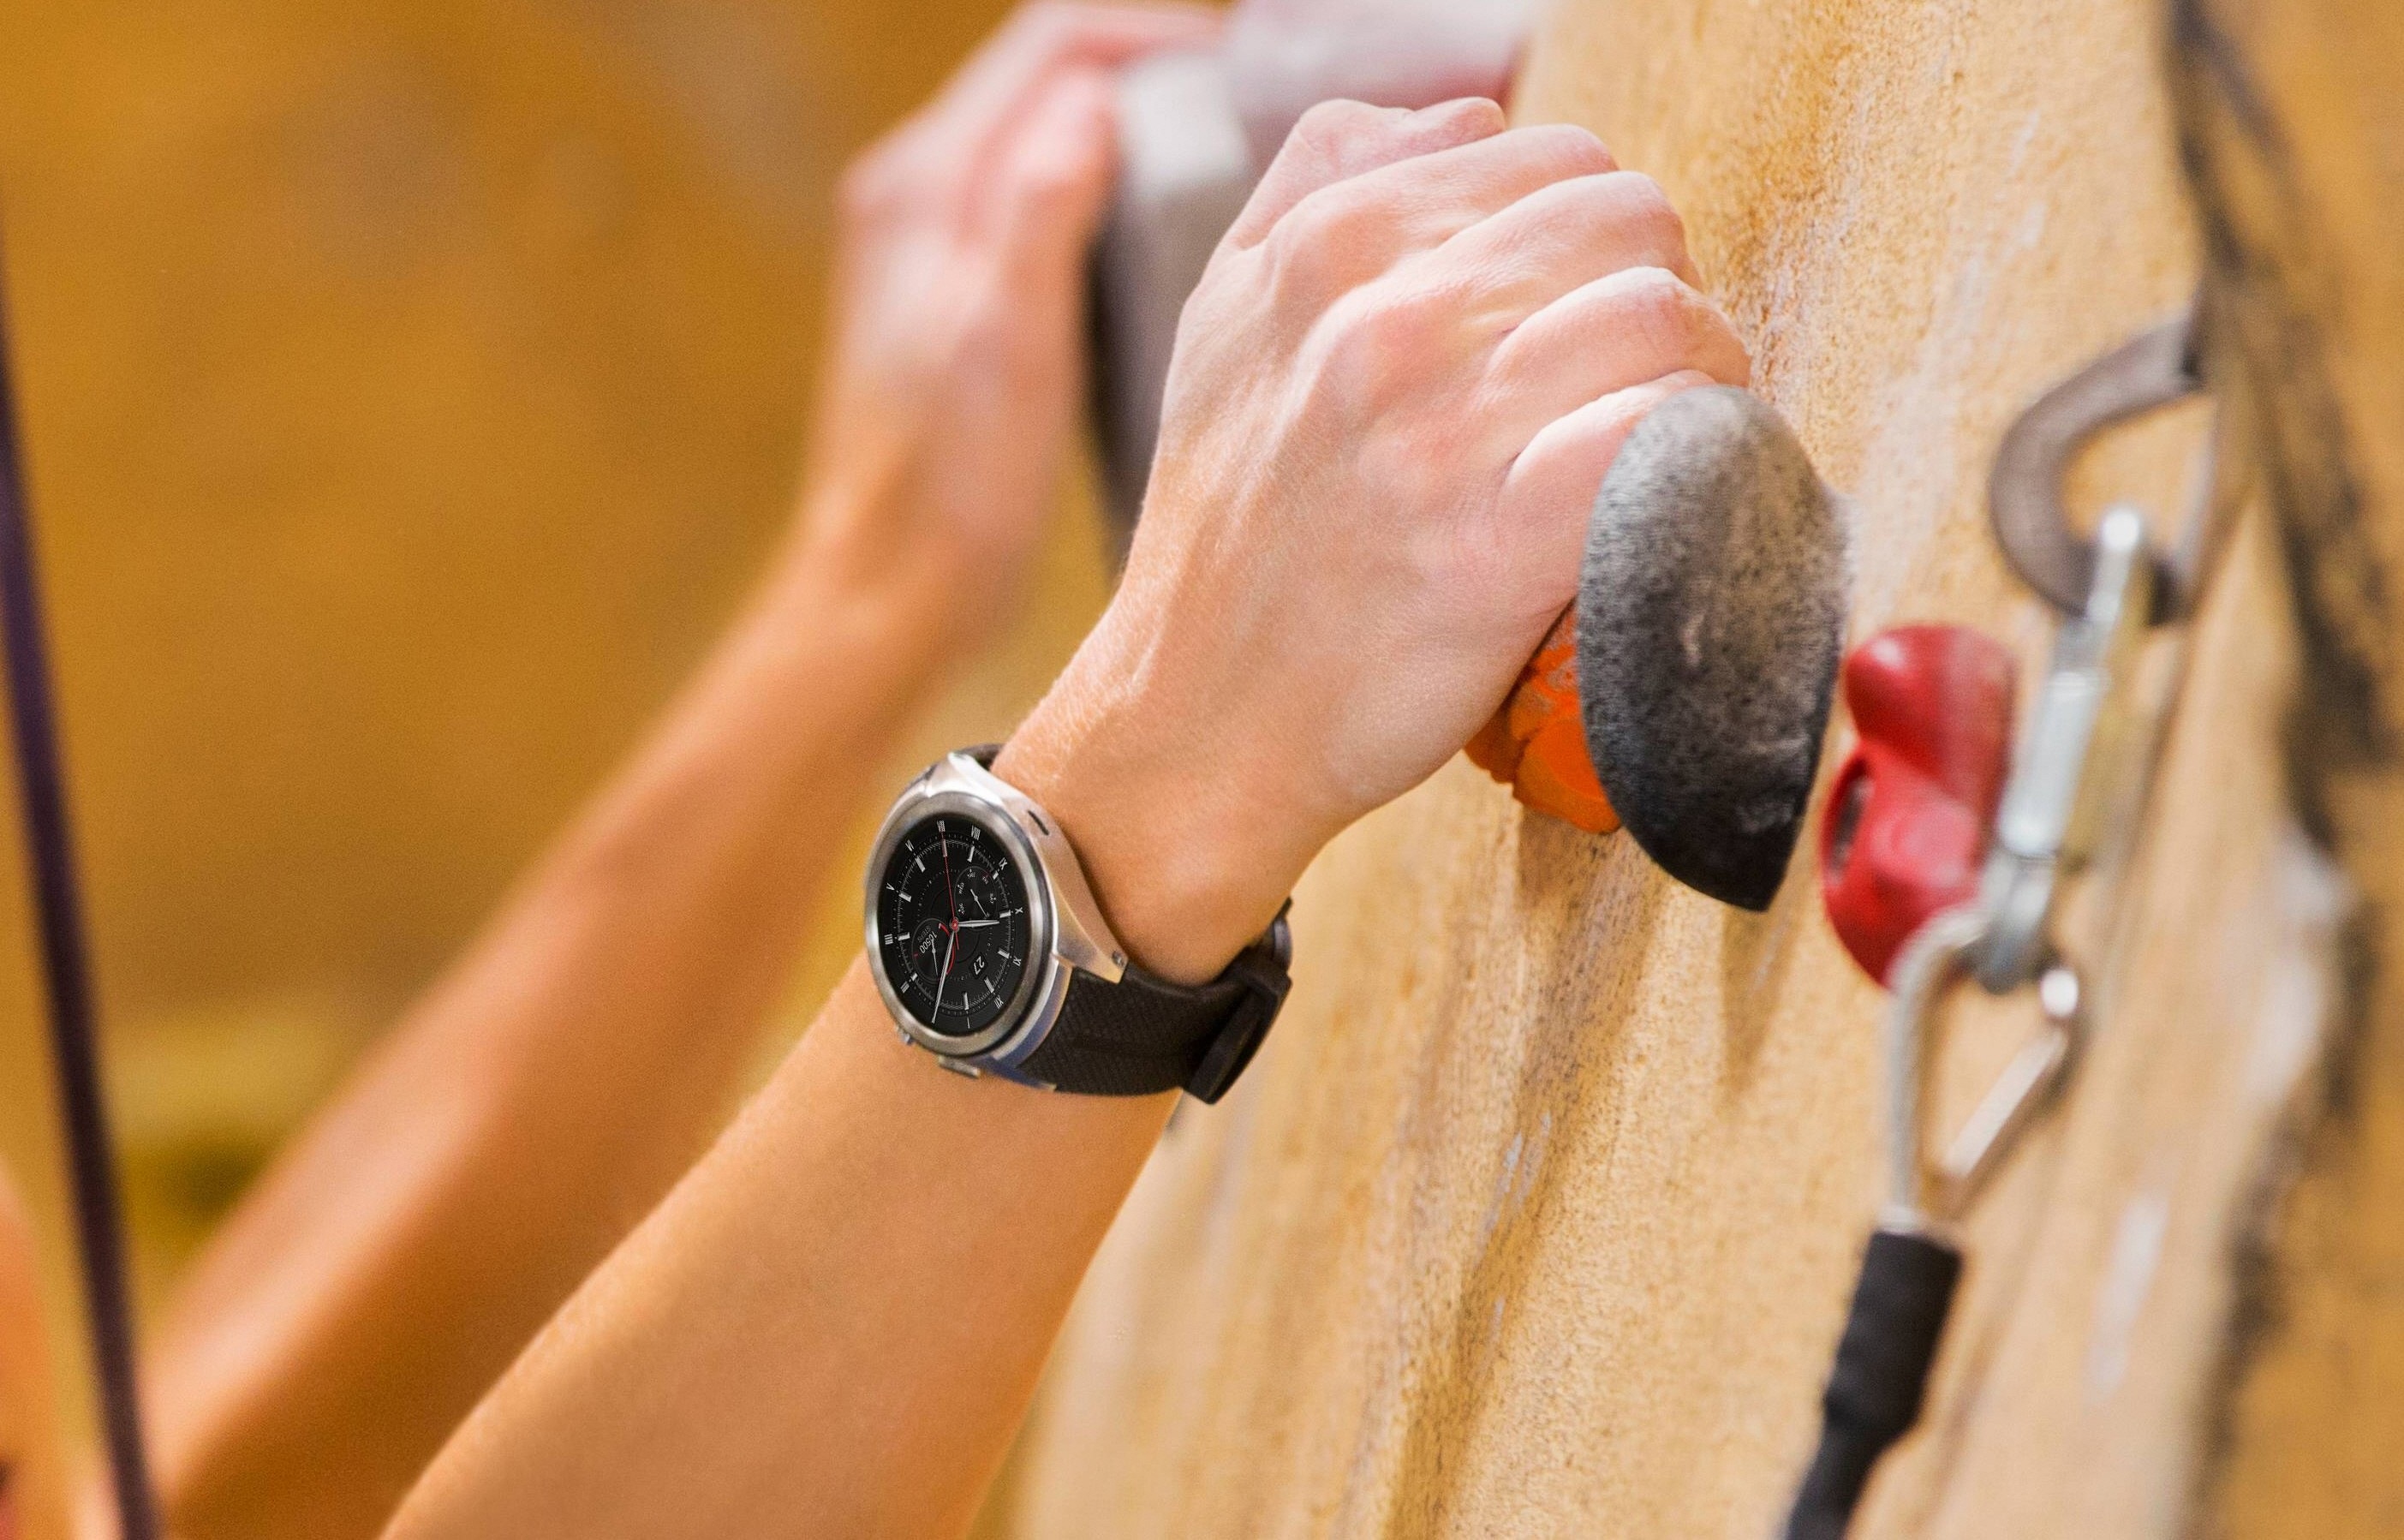 LG Watch Urbane 2 shown on wrist of person doing in-door rock climbing